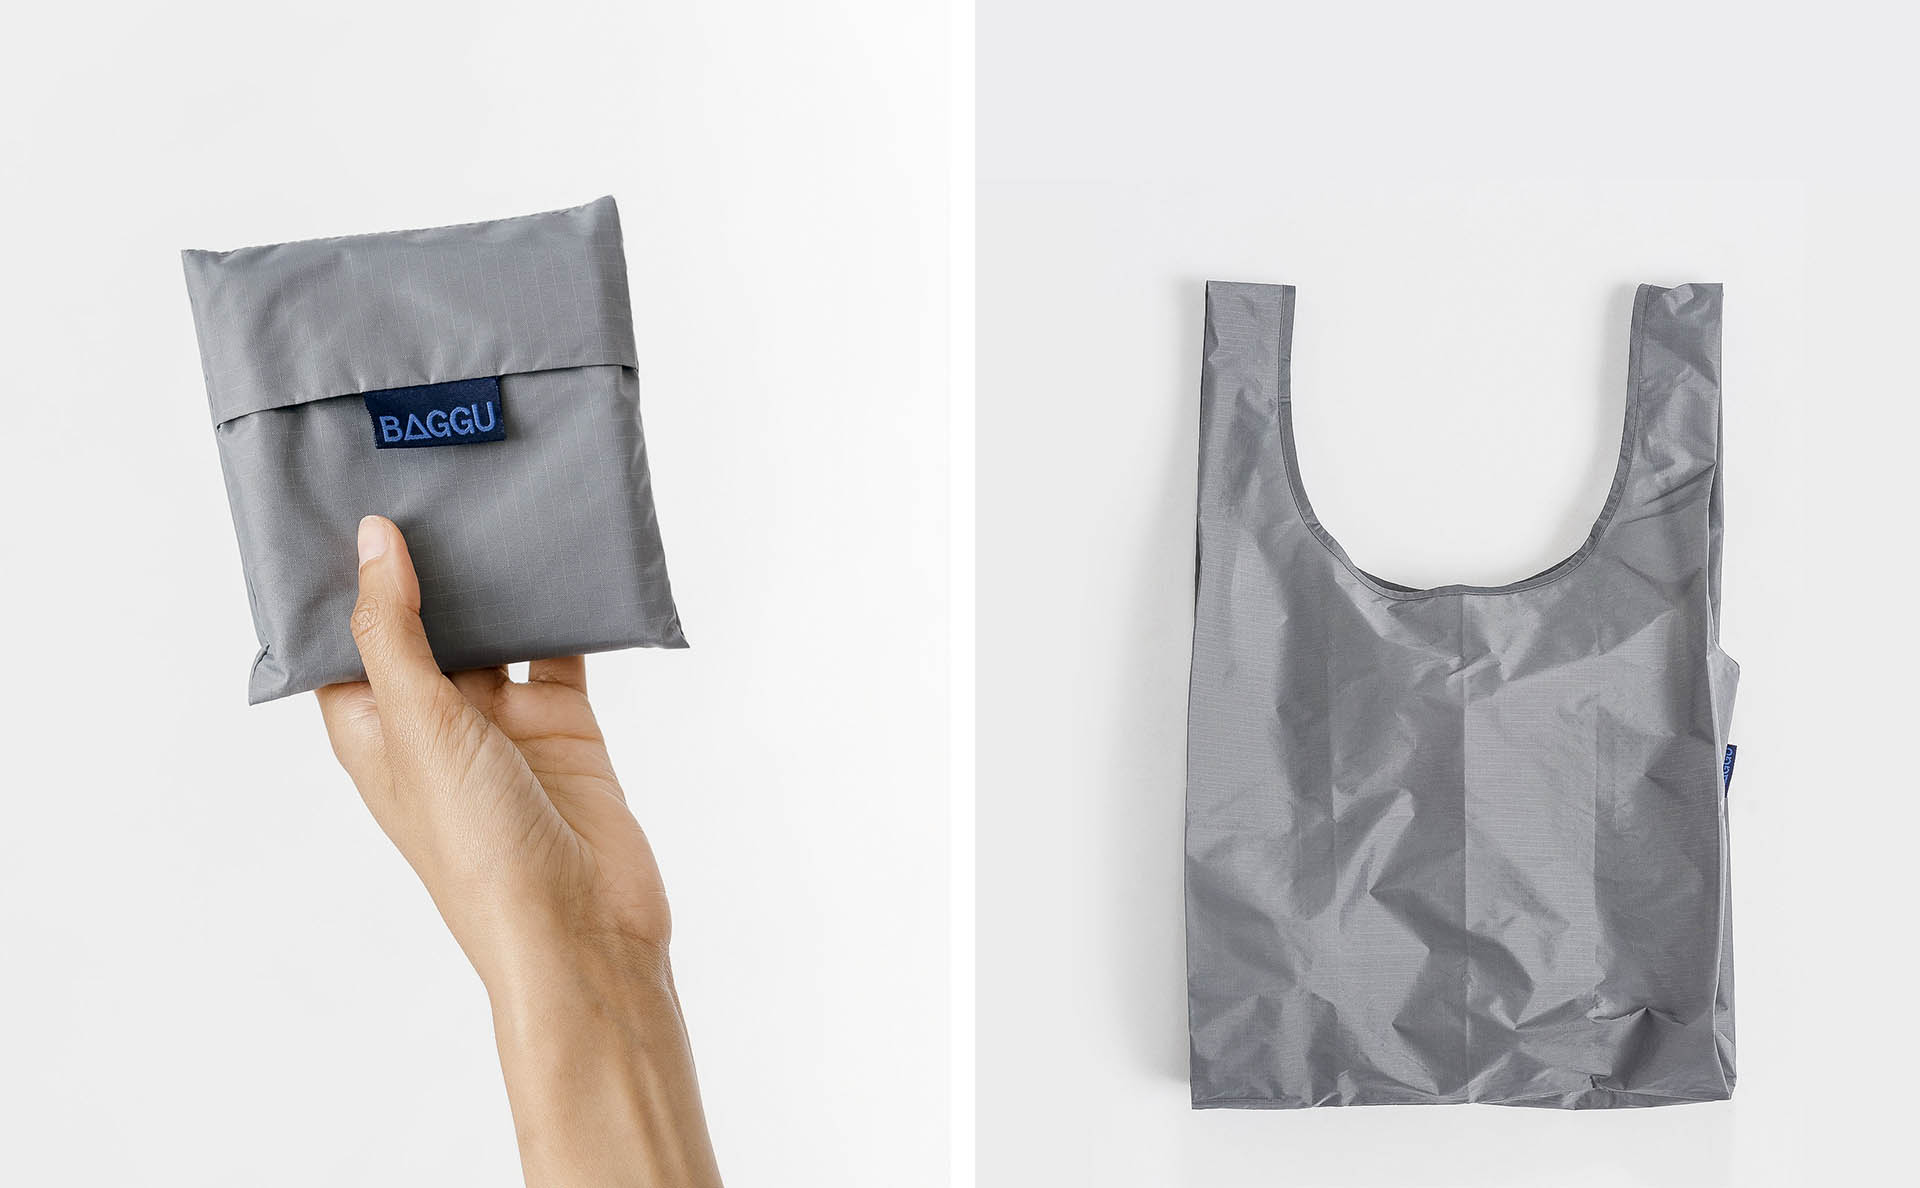 baggu-reusable-shopping-bag-grey-1.jpg